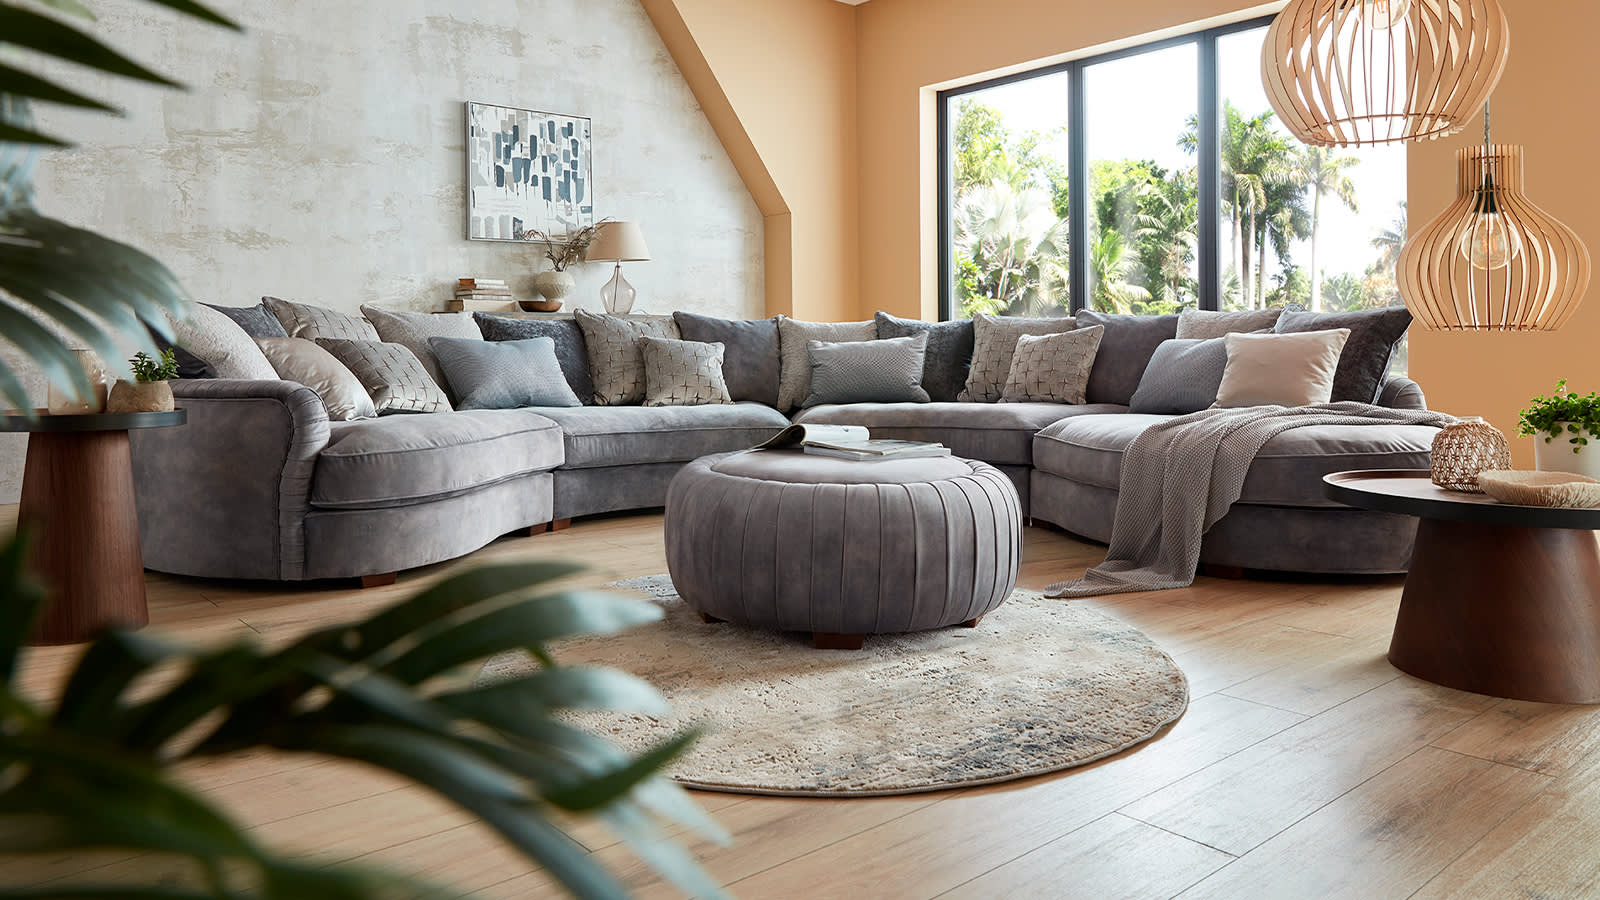 Sofology Palm corner fabric sofa